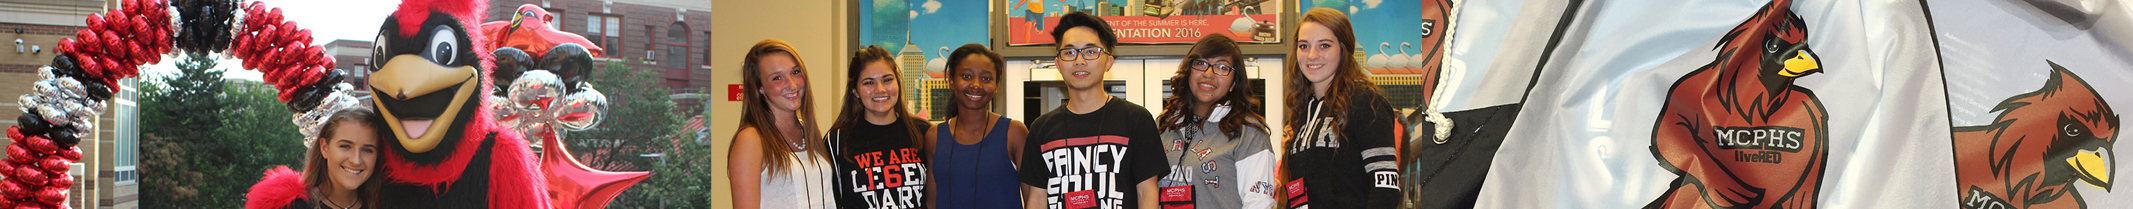 Students at MCPHS 2016 Orientation